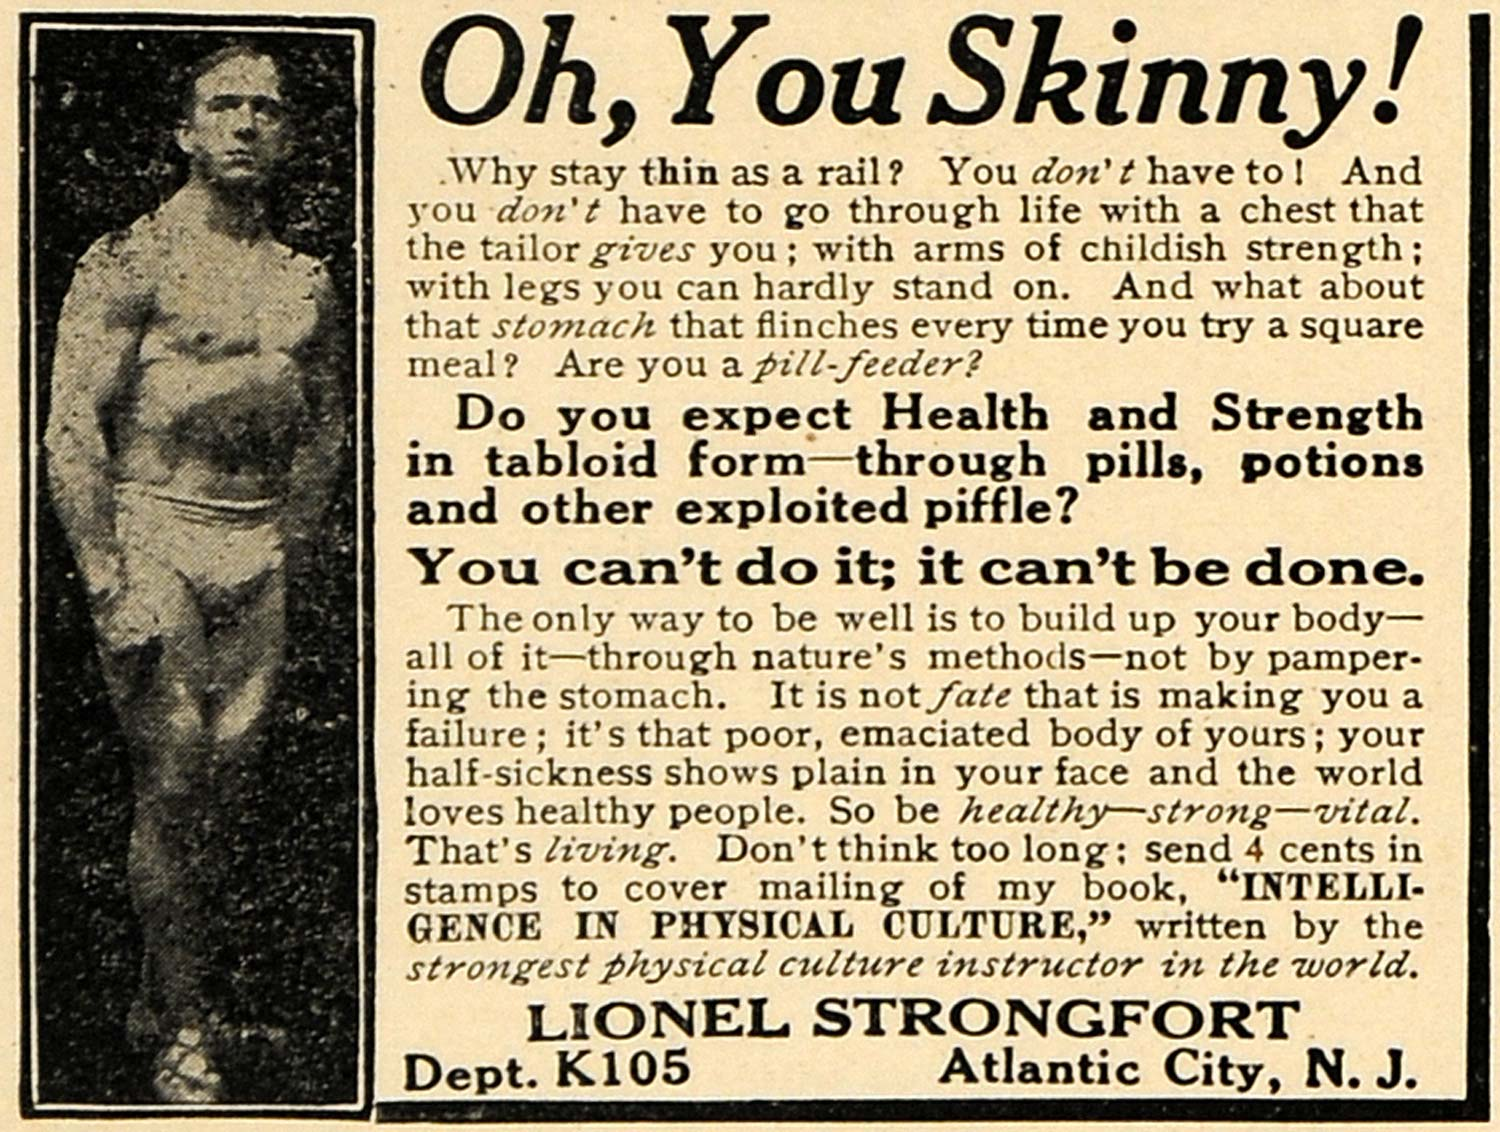 1915 Ad Lionel Strongfort Muscle Skinny Development Atlantic City Treatment ILW1